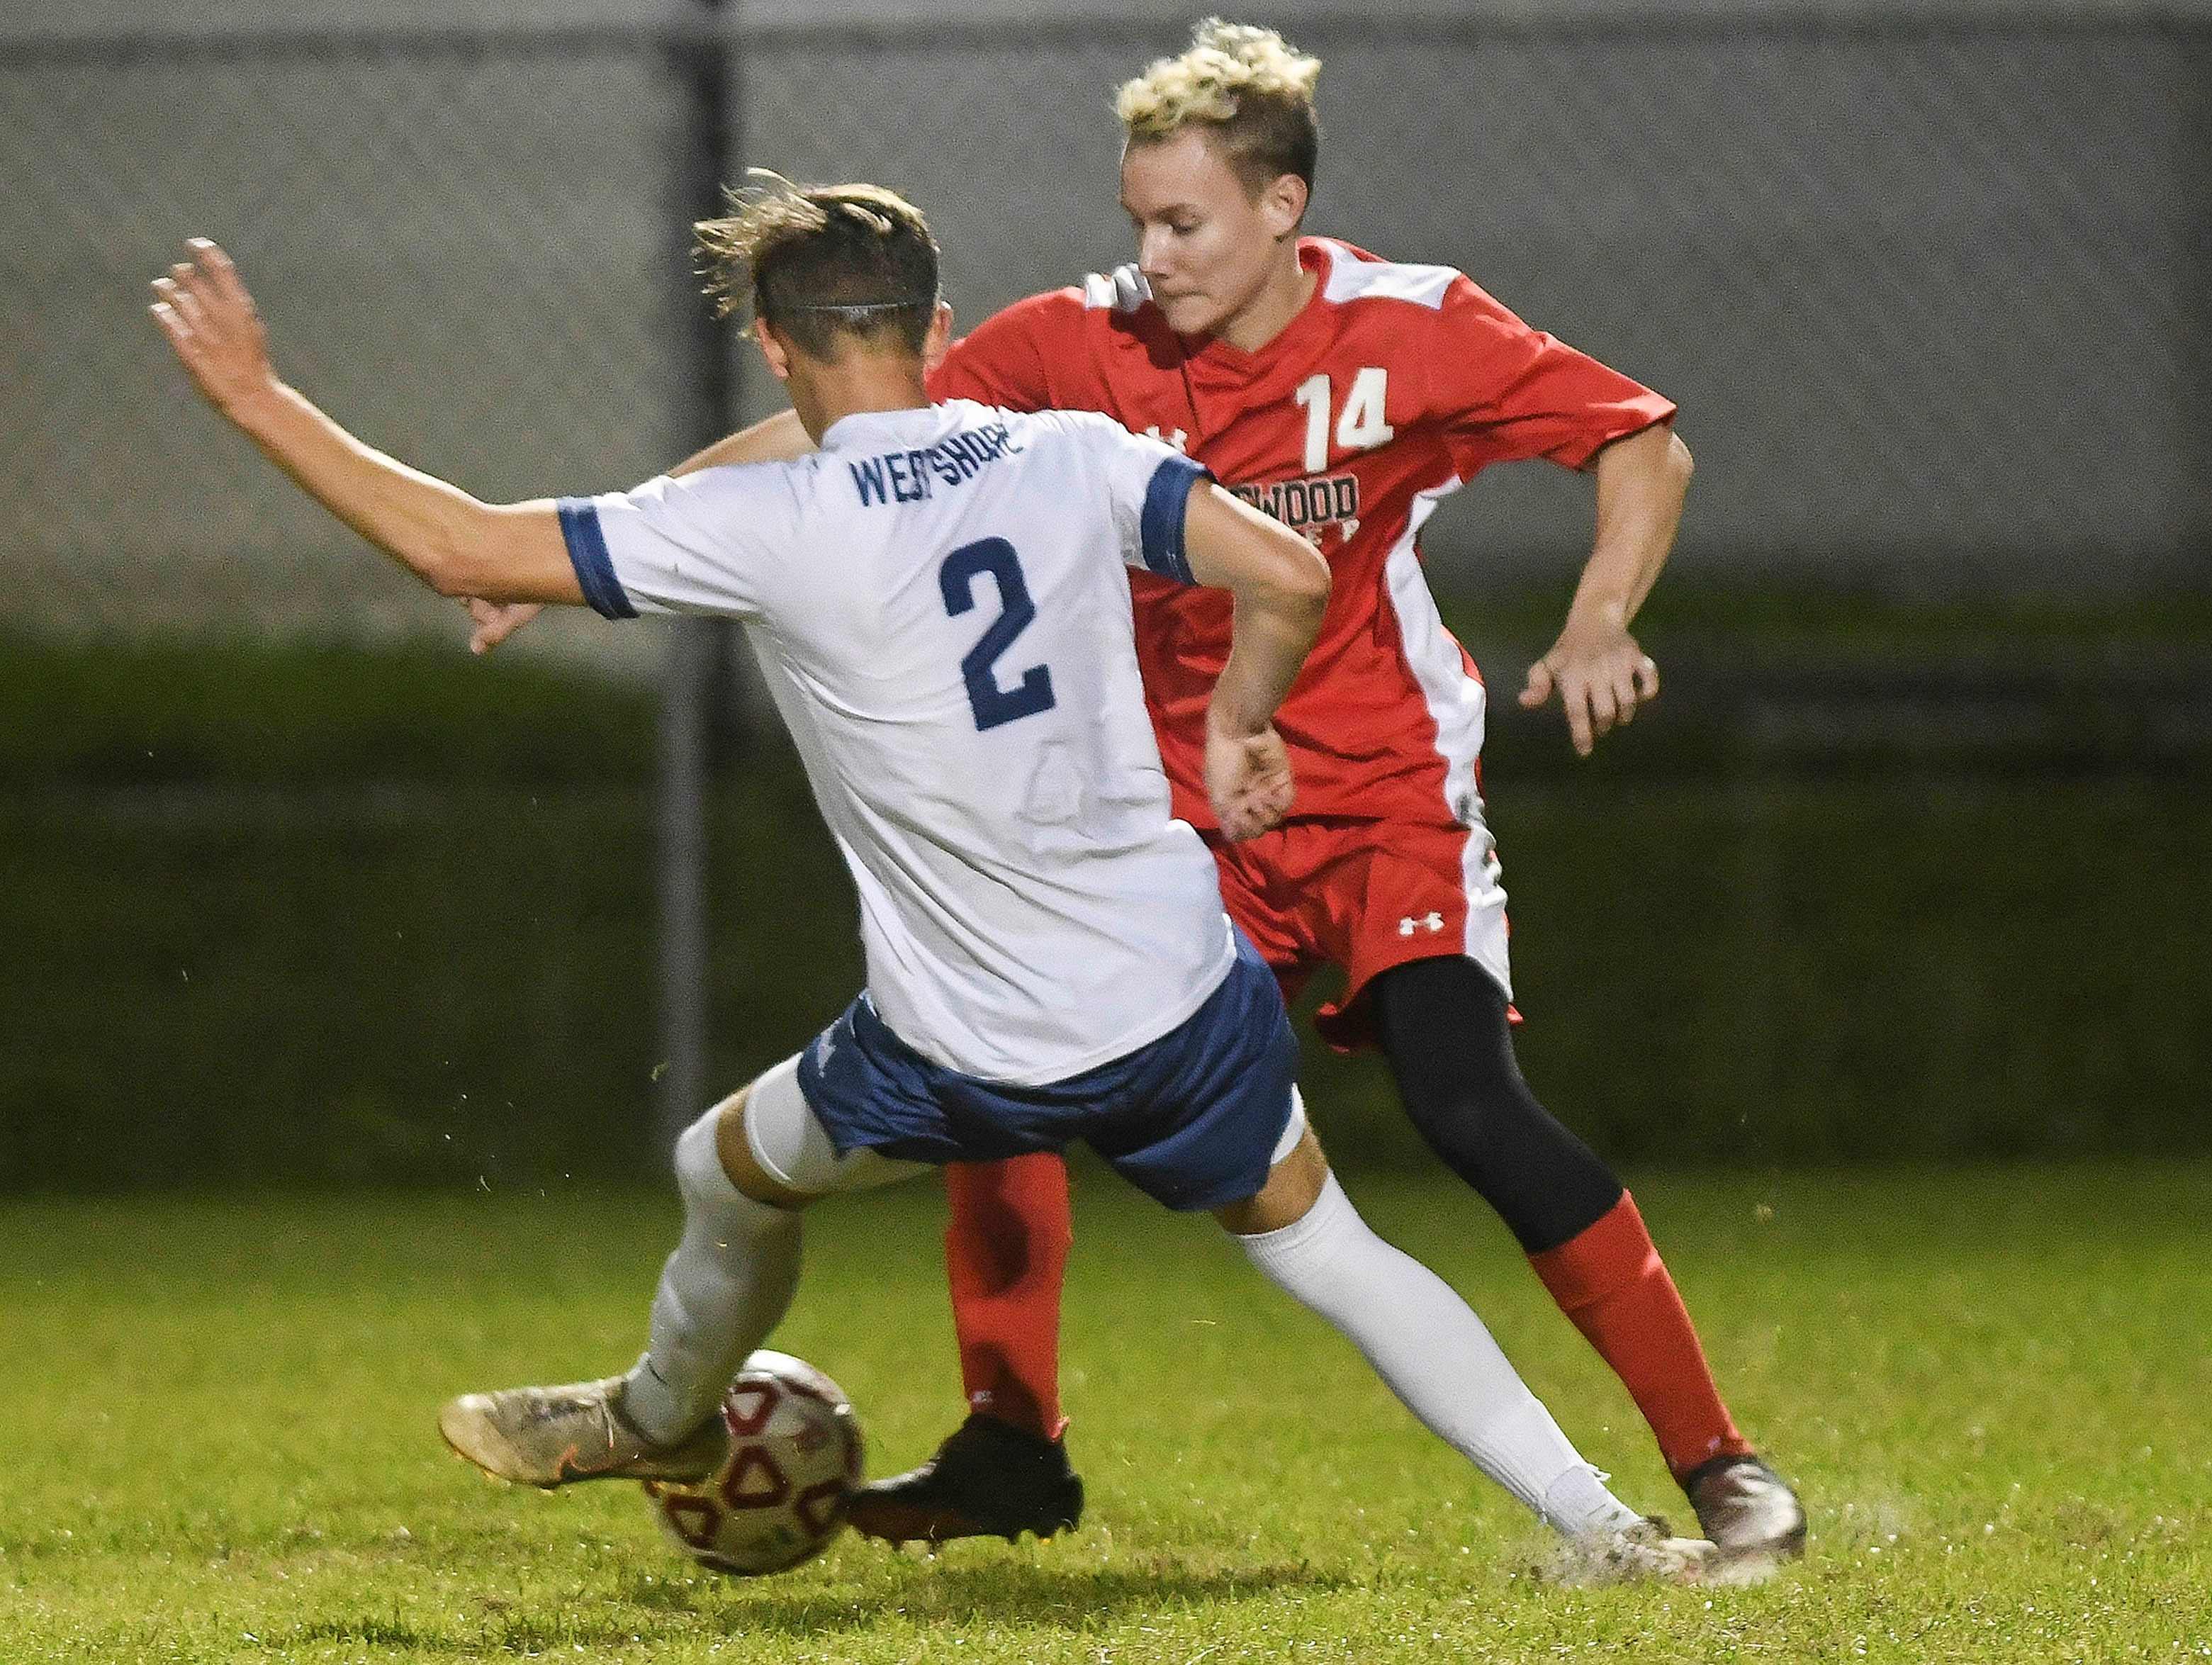 Ian Leighton of West Shore tries to maneuver around Adam Ussery of Edgewood during Thursday's Cape Coast Conference championship game.